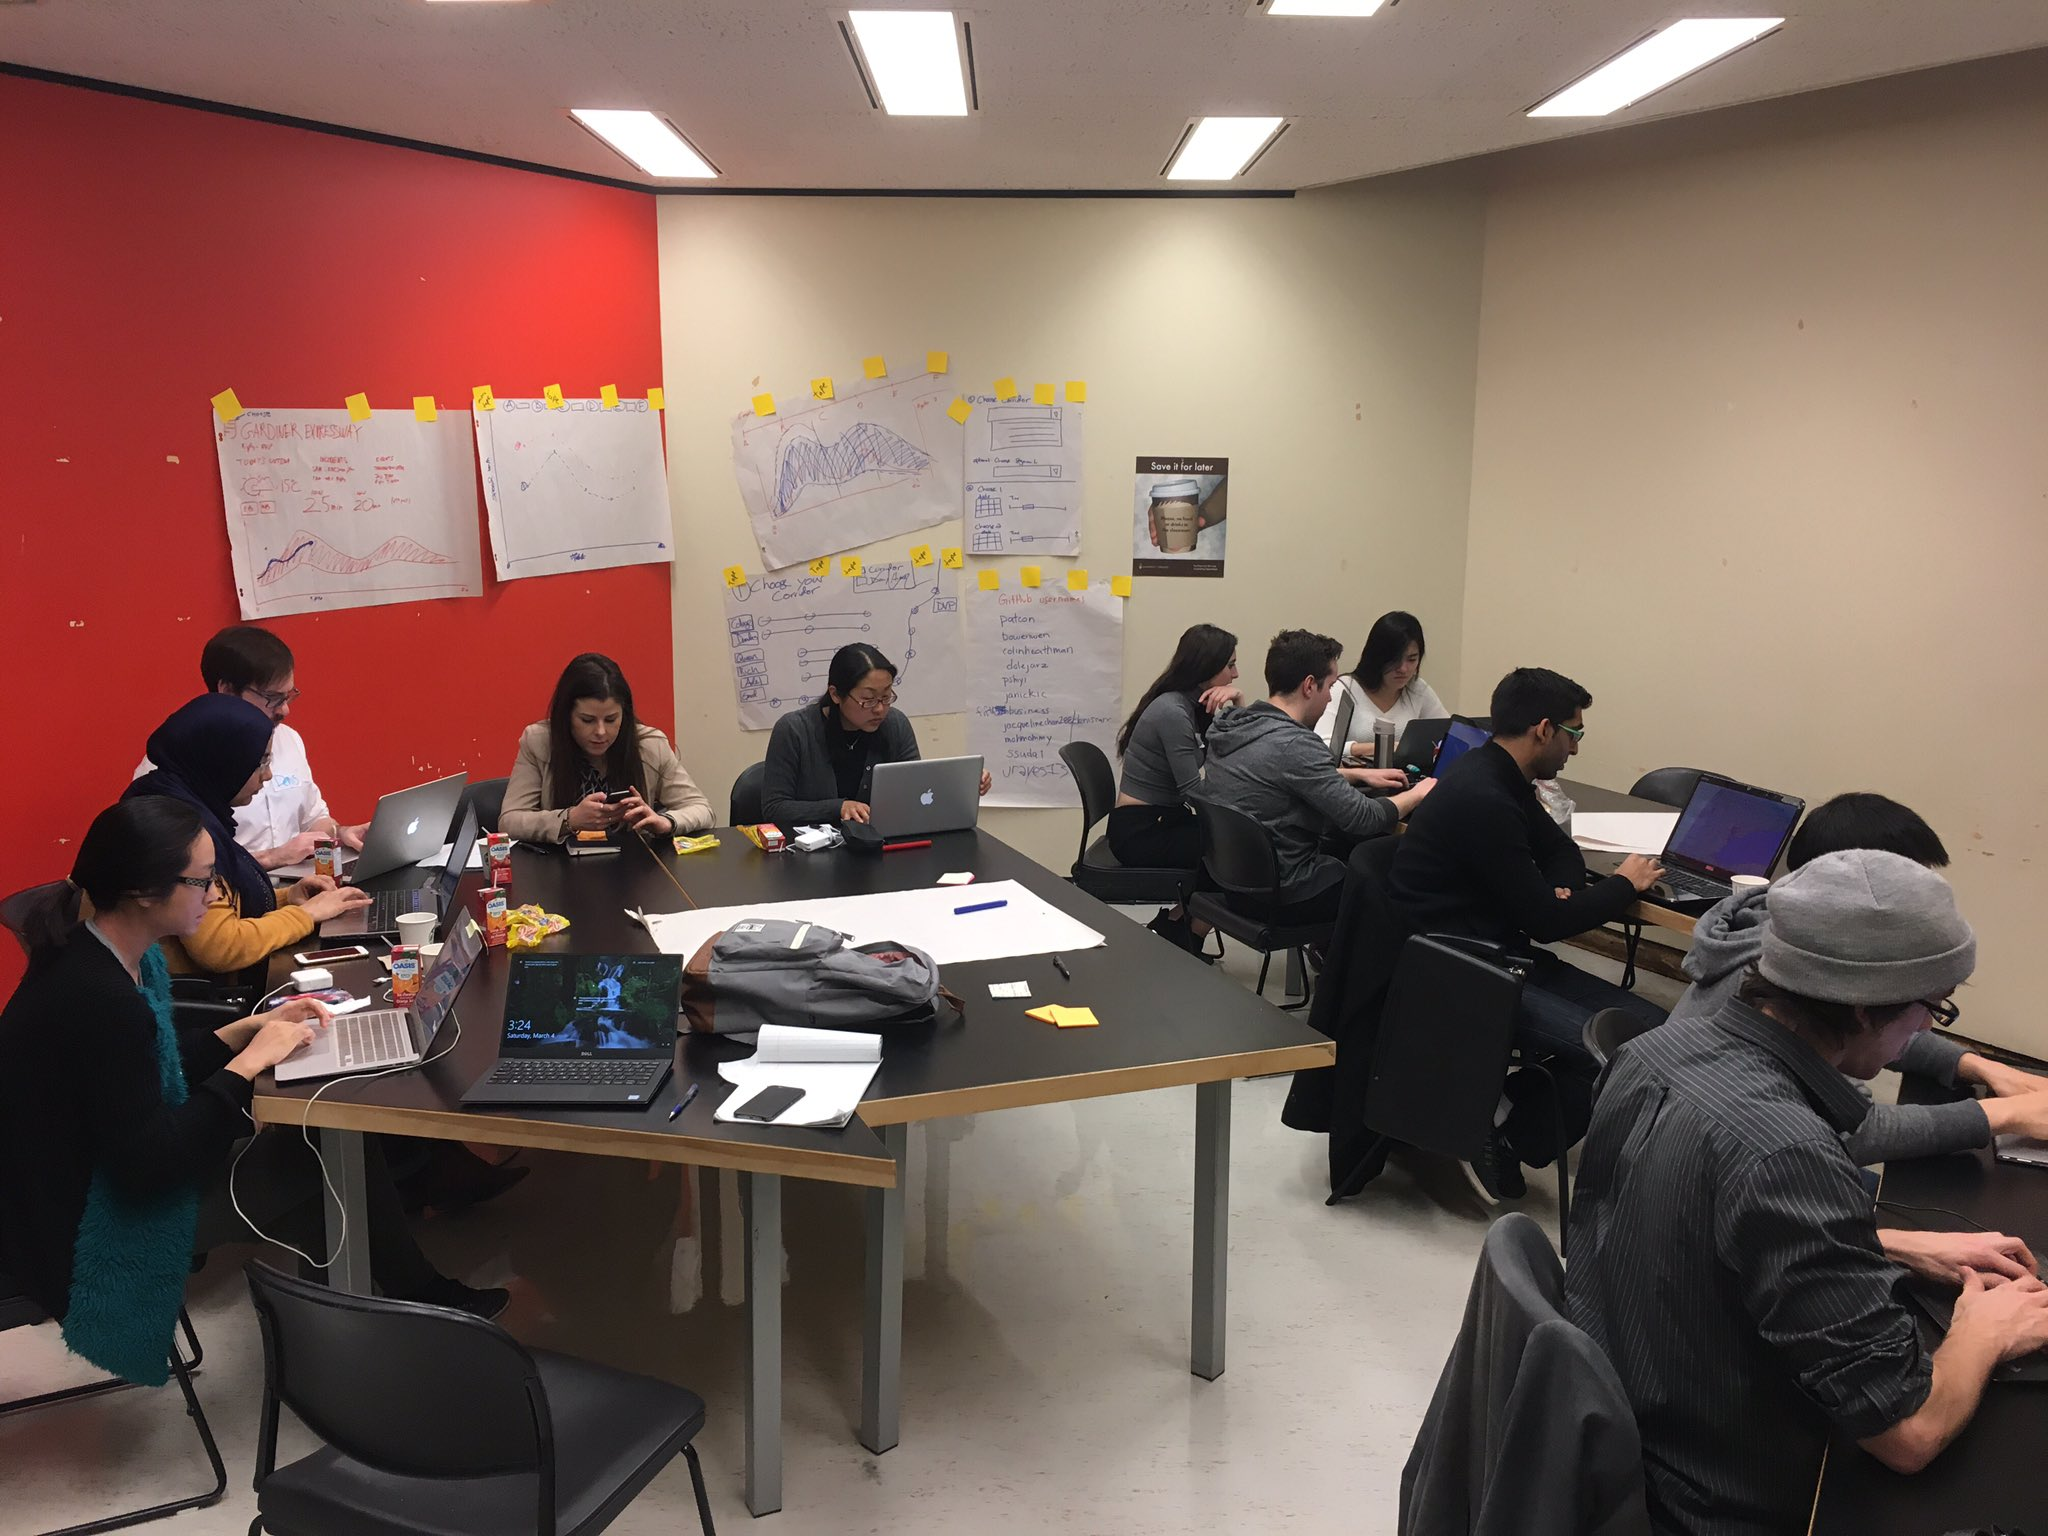 Great multi-talented team hard at work on the transportation challenge #CodeAcrossTO https://t.co/sgJLW5cA5H